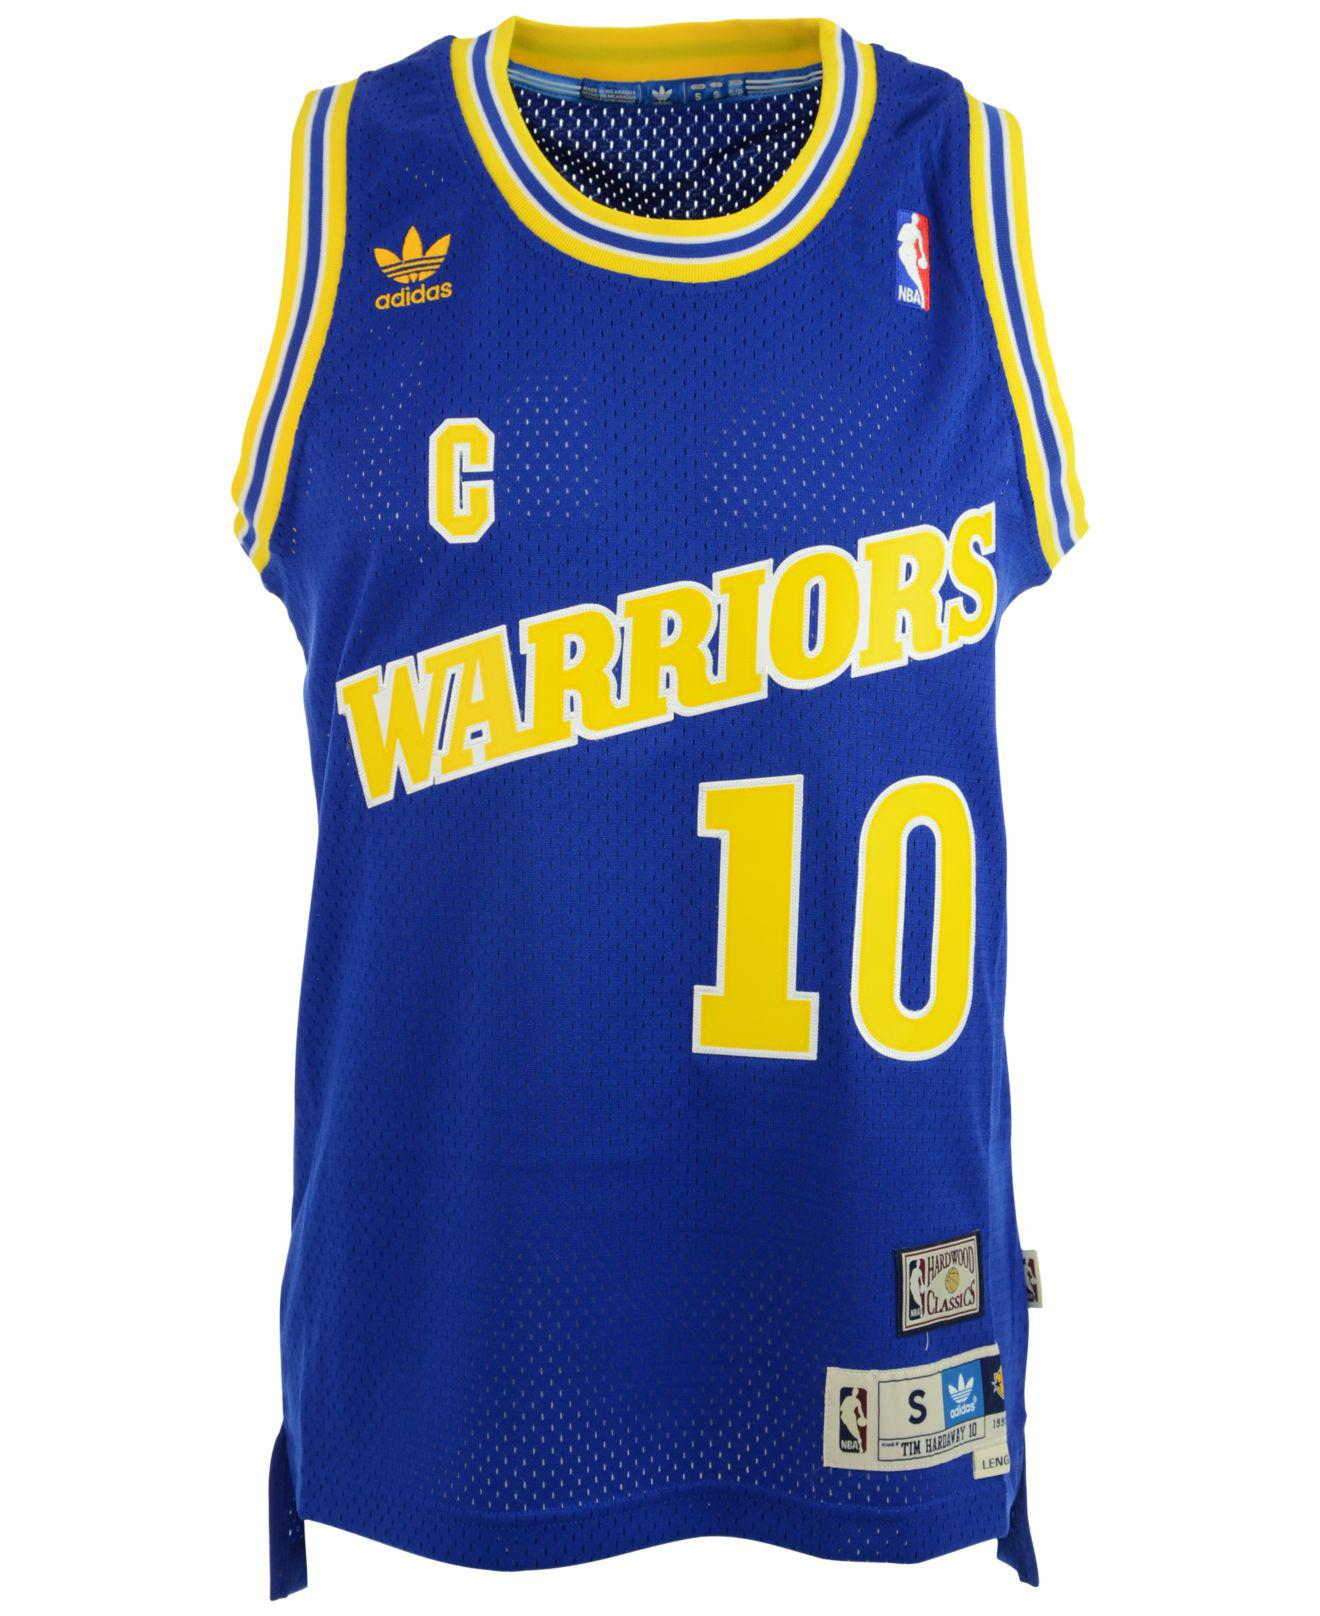 0d1bb6cc2 adidas Tim Hardaway Golden State Warriors Swingman Jersey in Blue ...